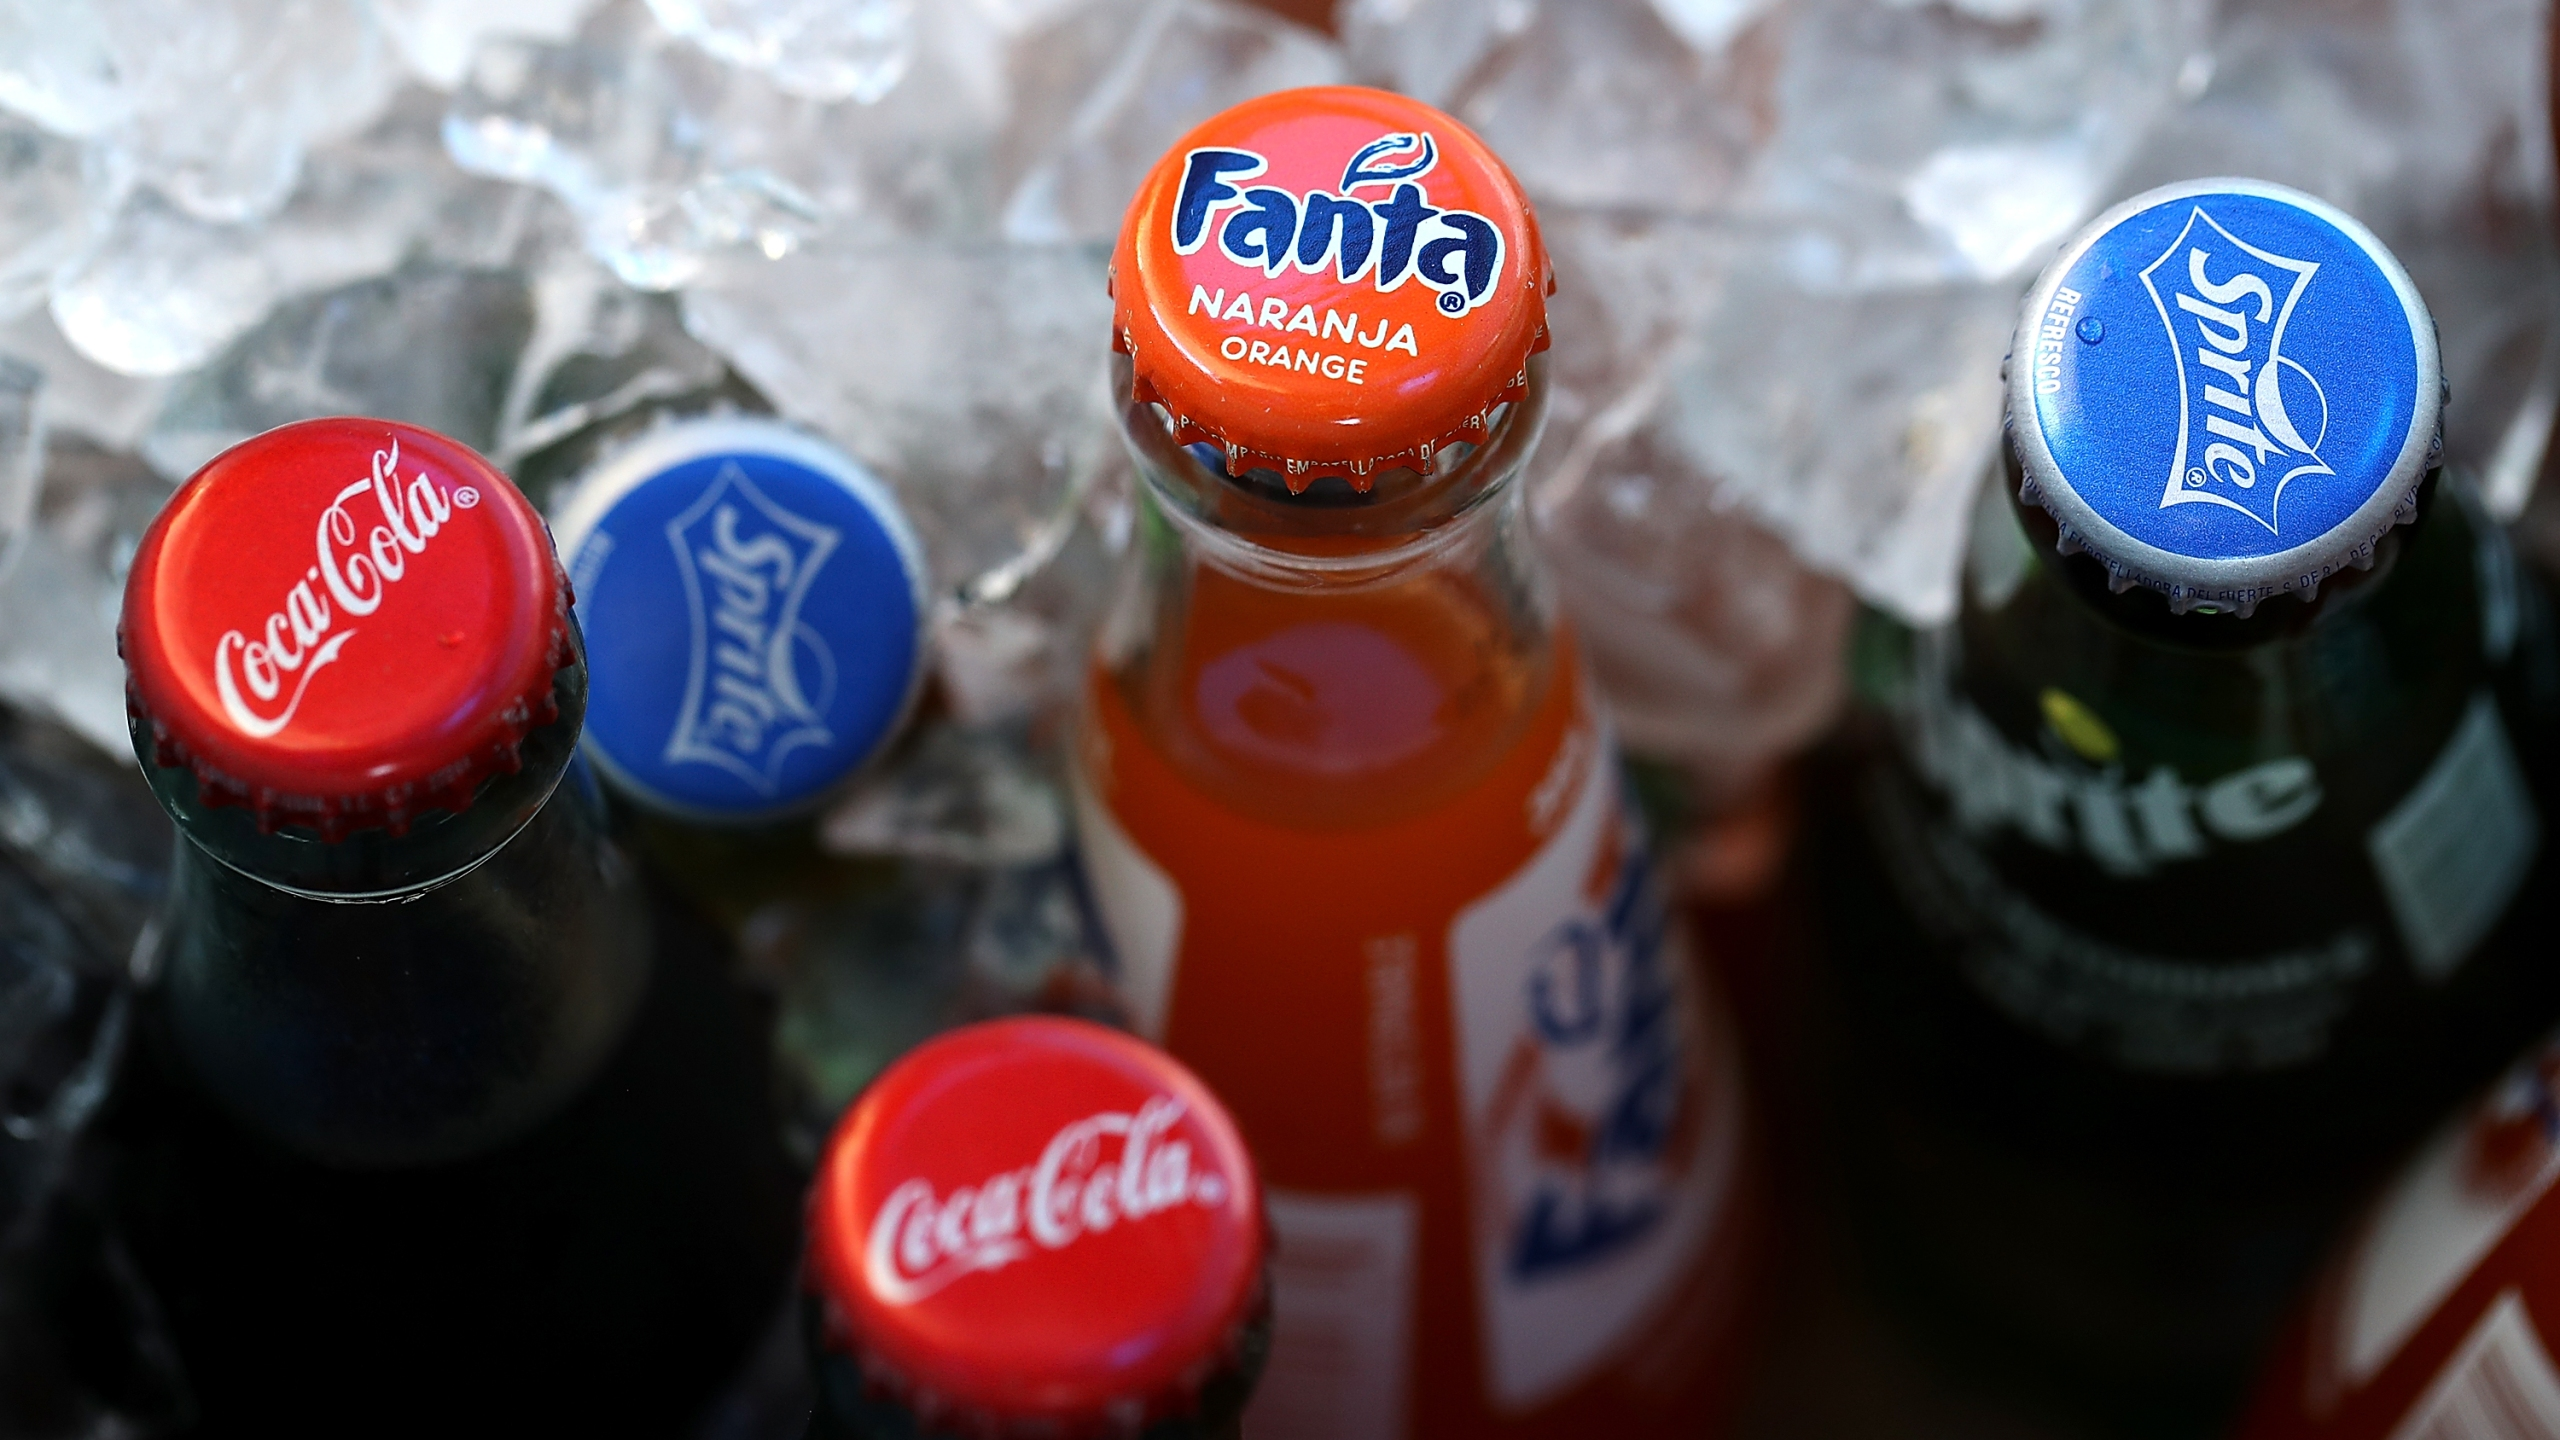 Bottles of soda are displayed in a cooler in San Francisco on June 29, 2018. (Credit: Justin Sullivan / Getty Images)